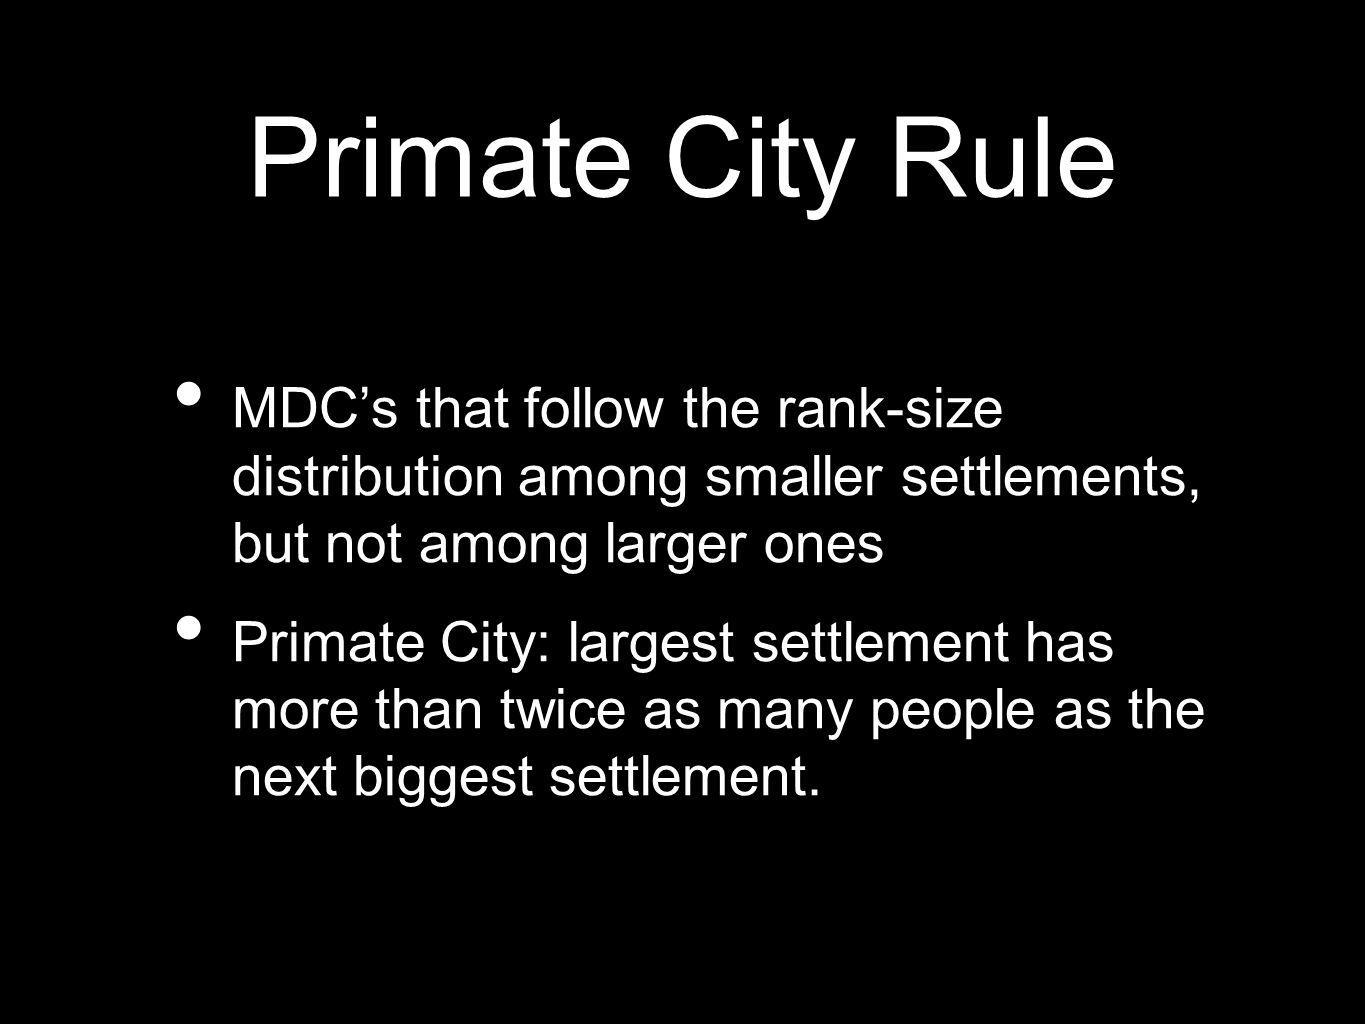 Primate City RuleMDC's that follow the rank-size distribution among smaller settlements, but not among larger ones.